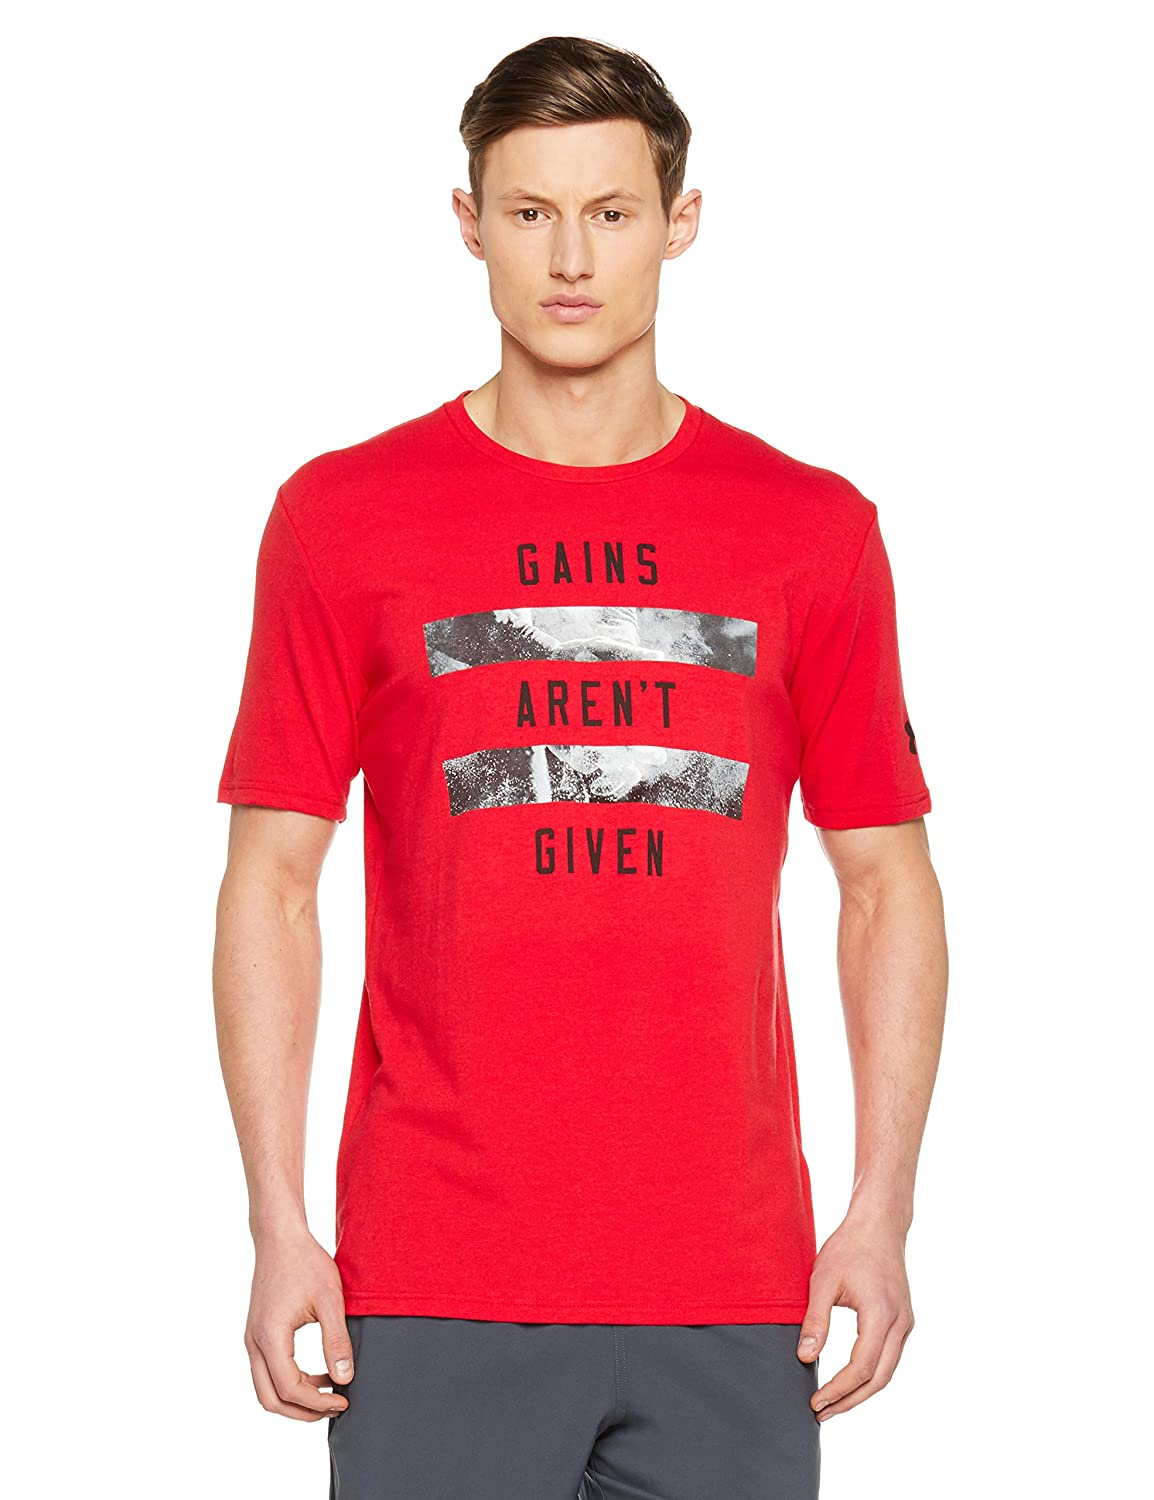 TALLA M. Under Armour Gains Arent Given SS Camiseta de Manga Corta, Hombre